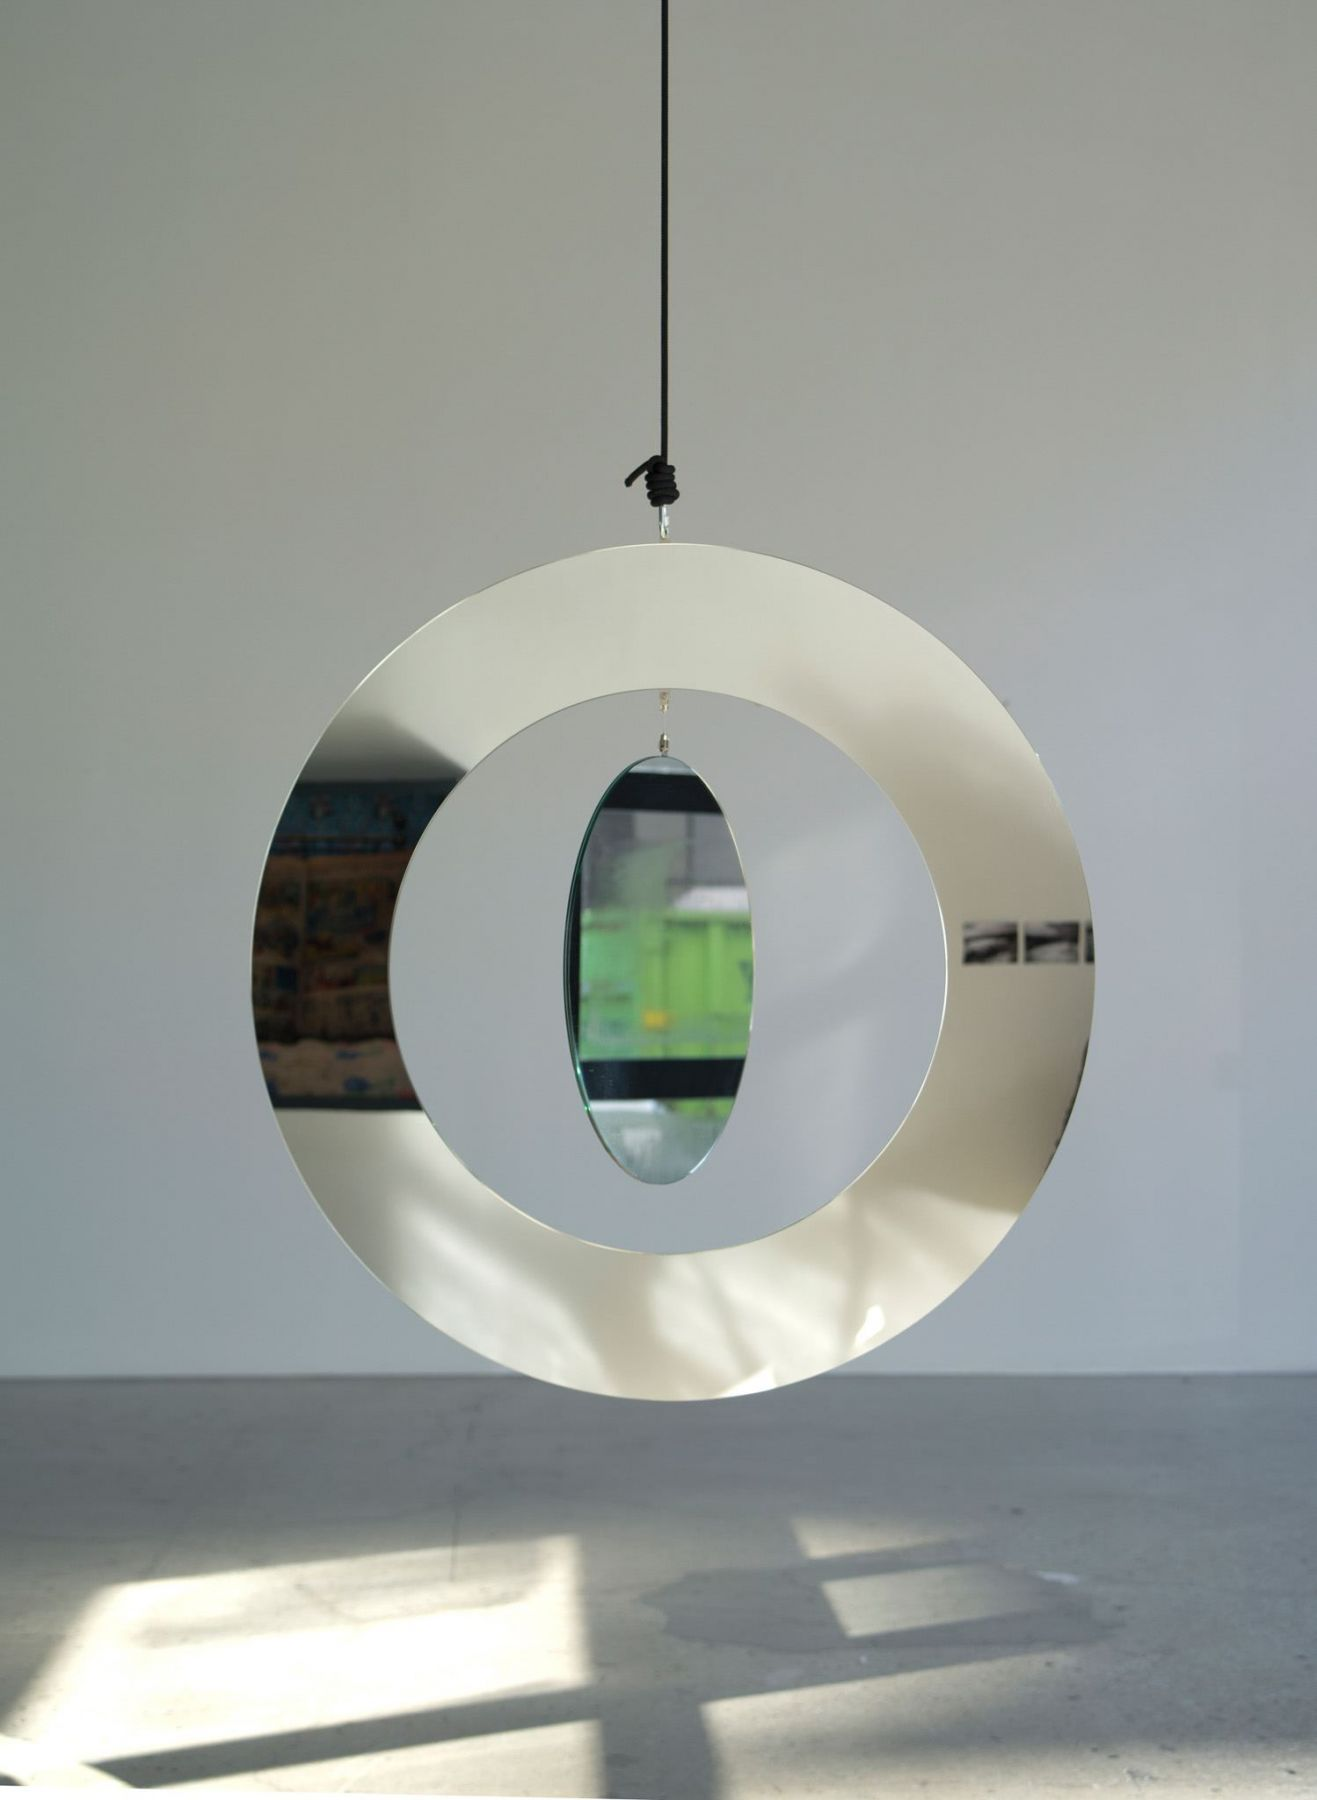 Jeppe Hein, Two in One Mirror Mobile